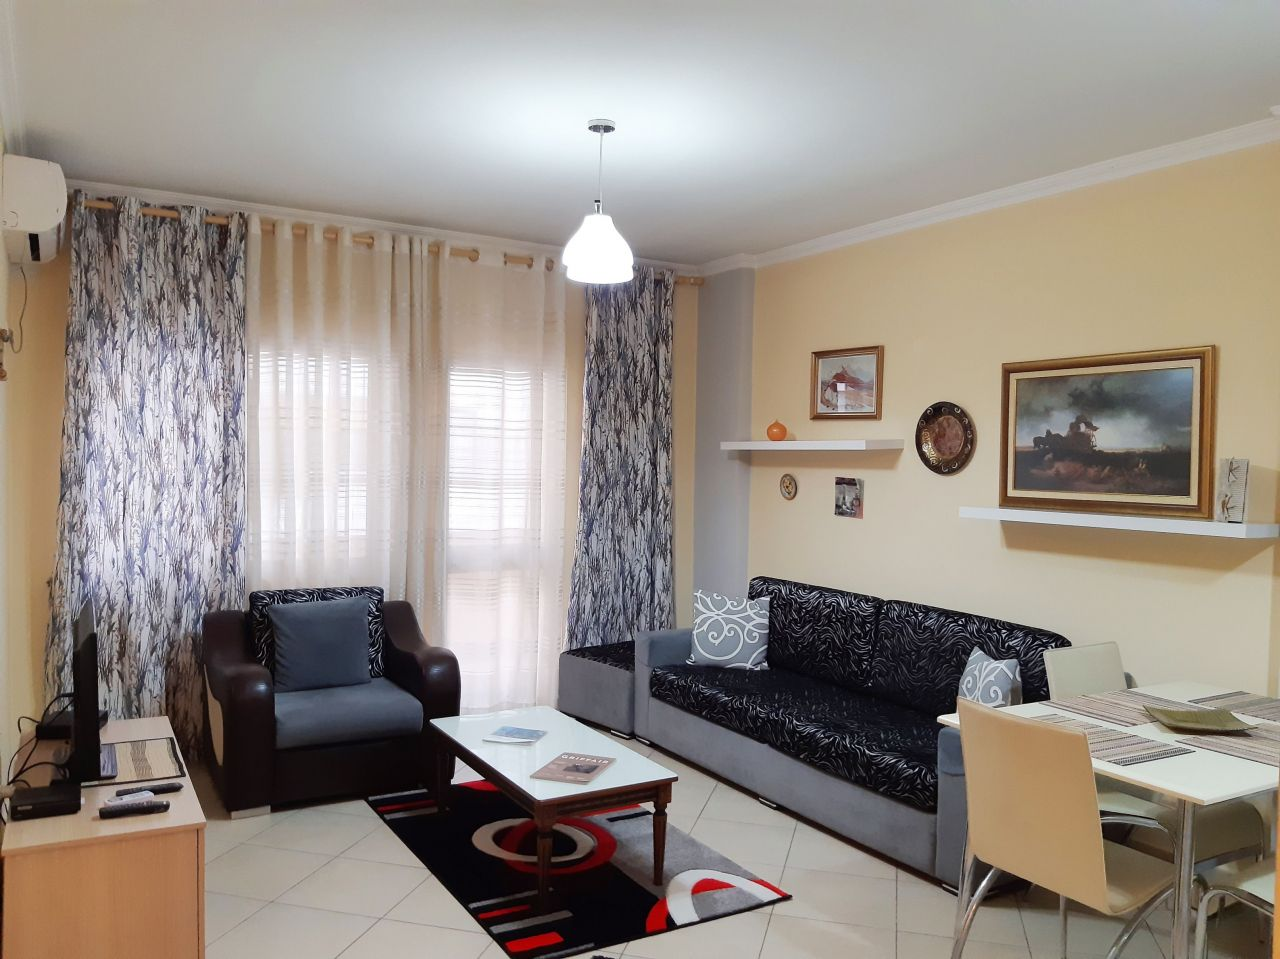 Rent One Bedroom Apartment In Tirane Albania At Him Kolli Street